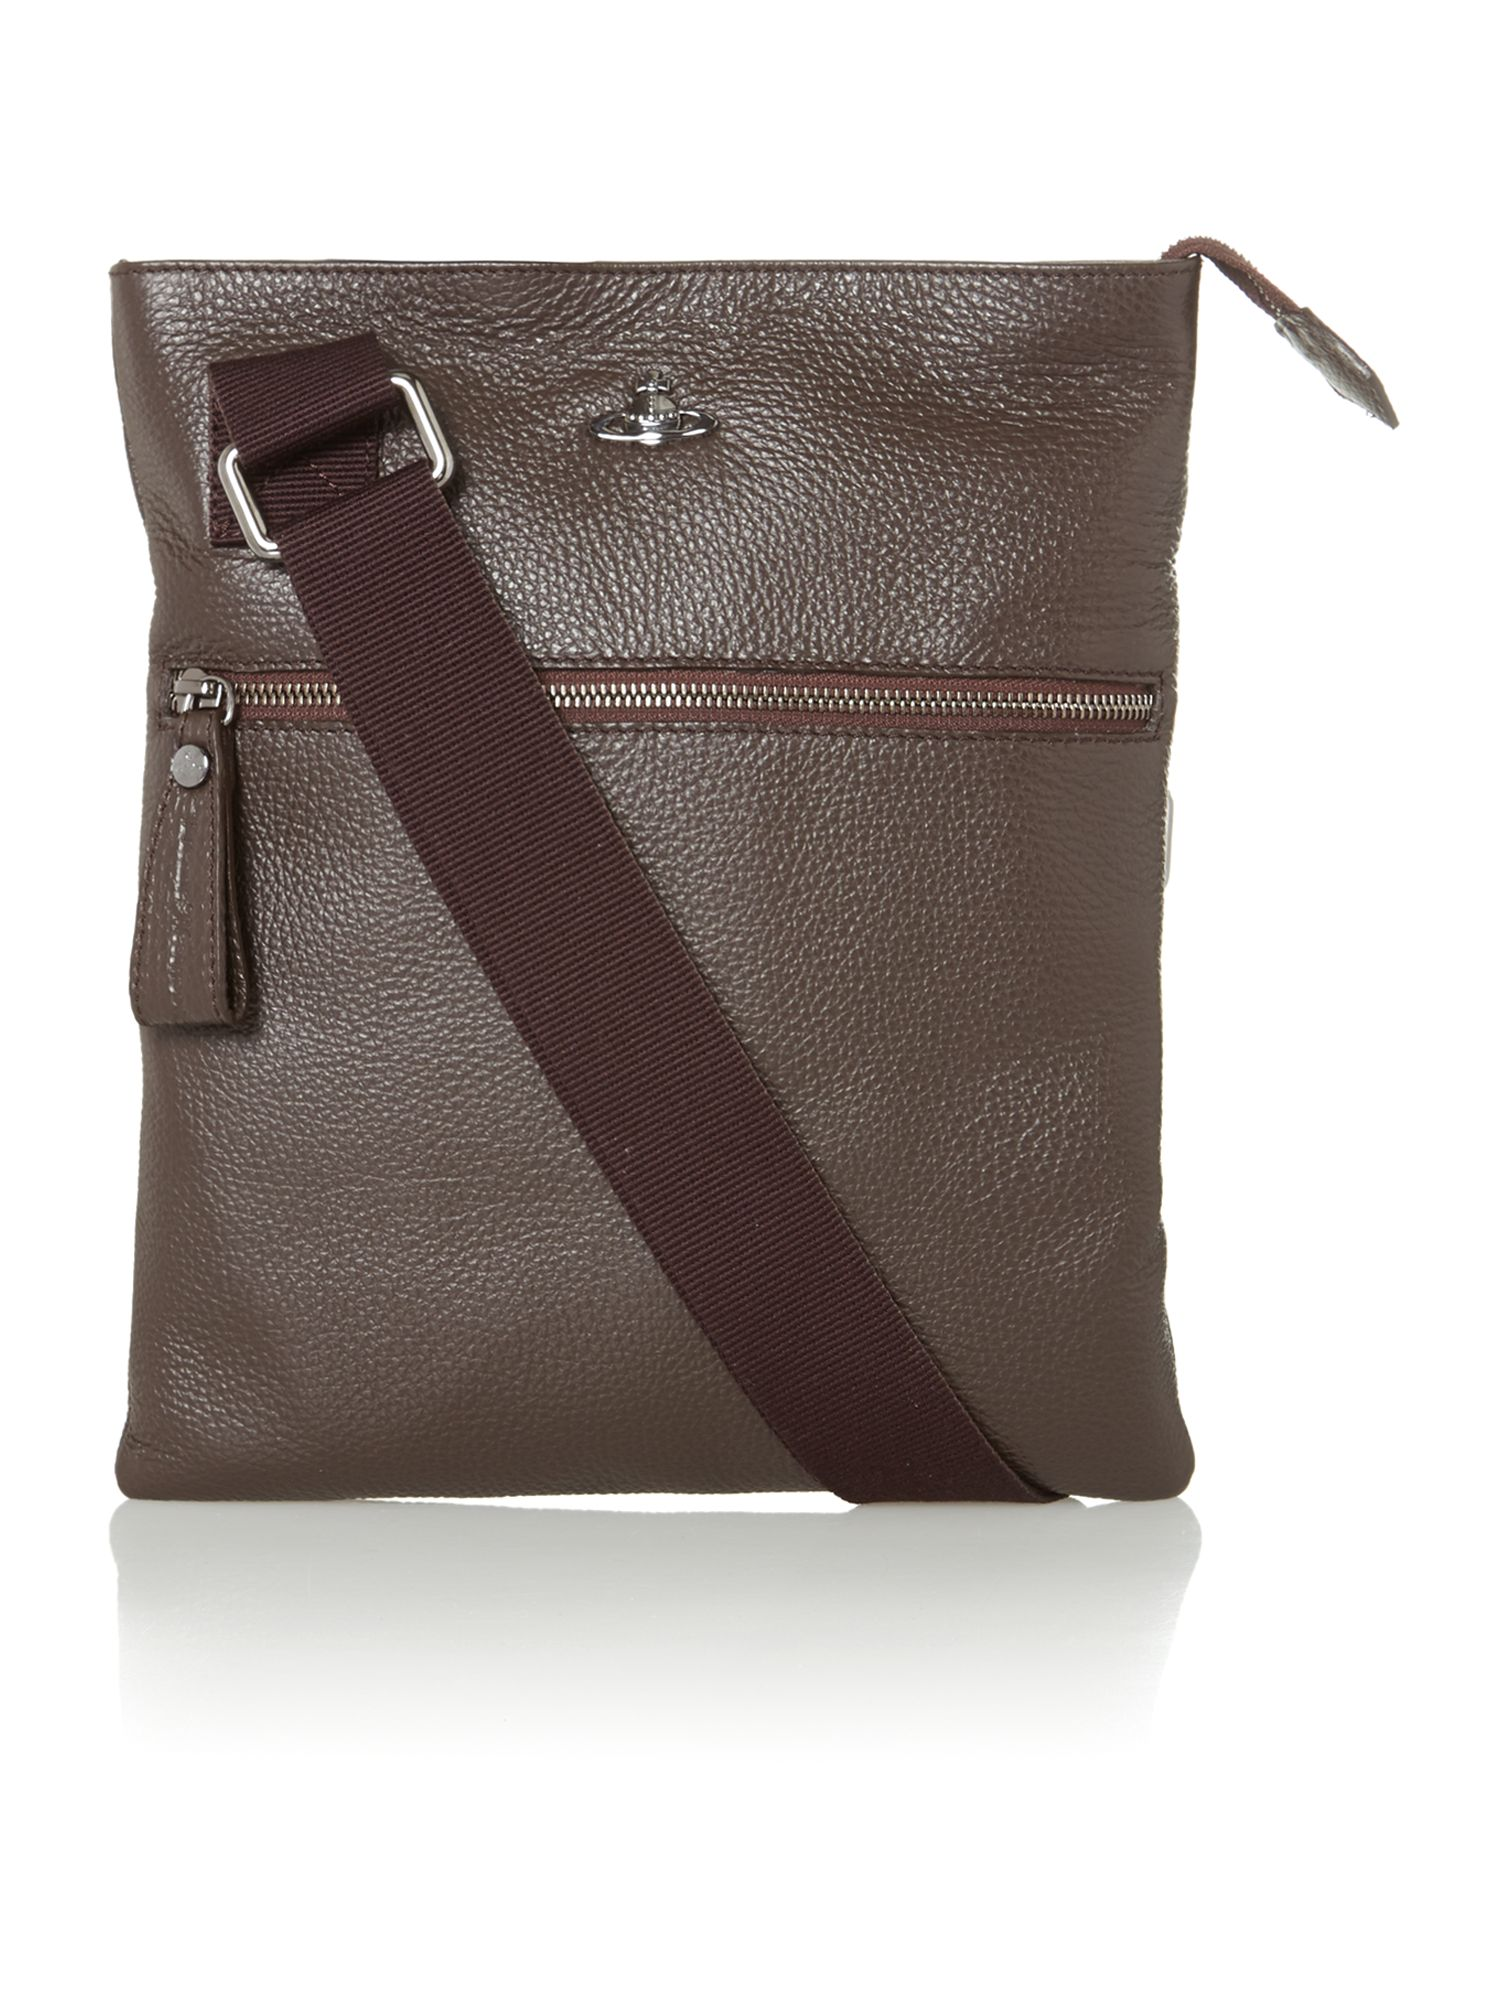 Leather man pouch